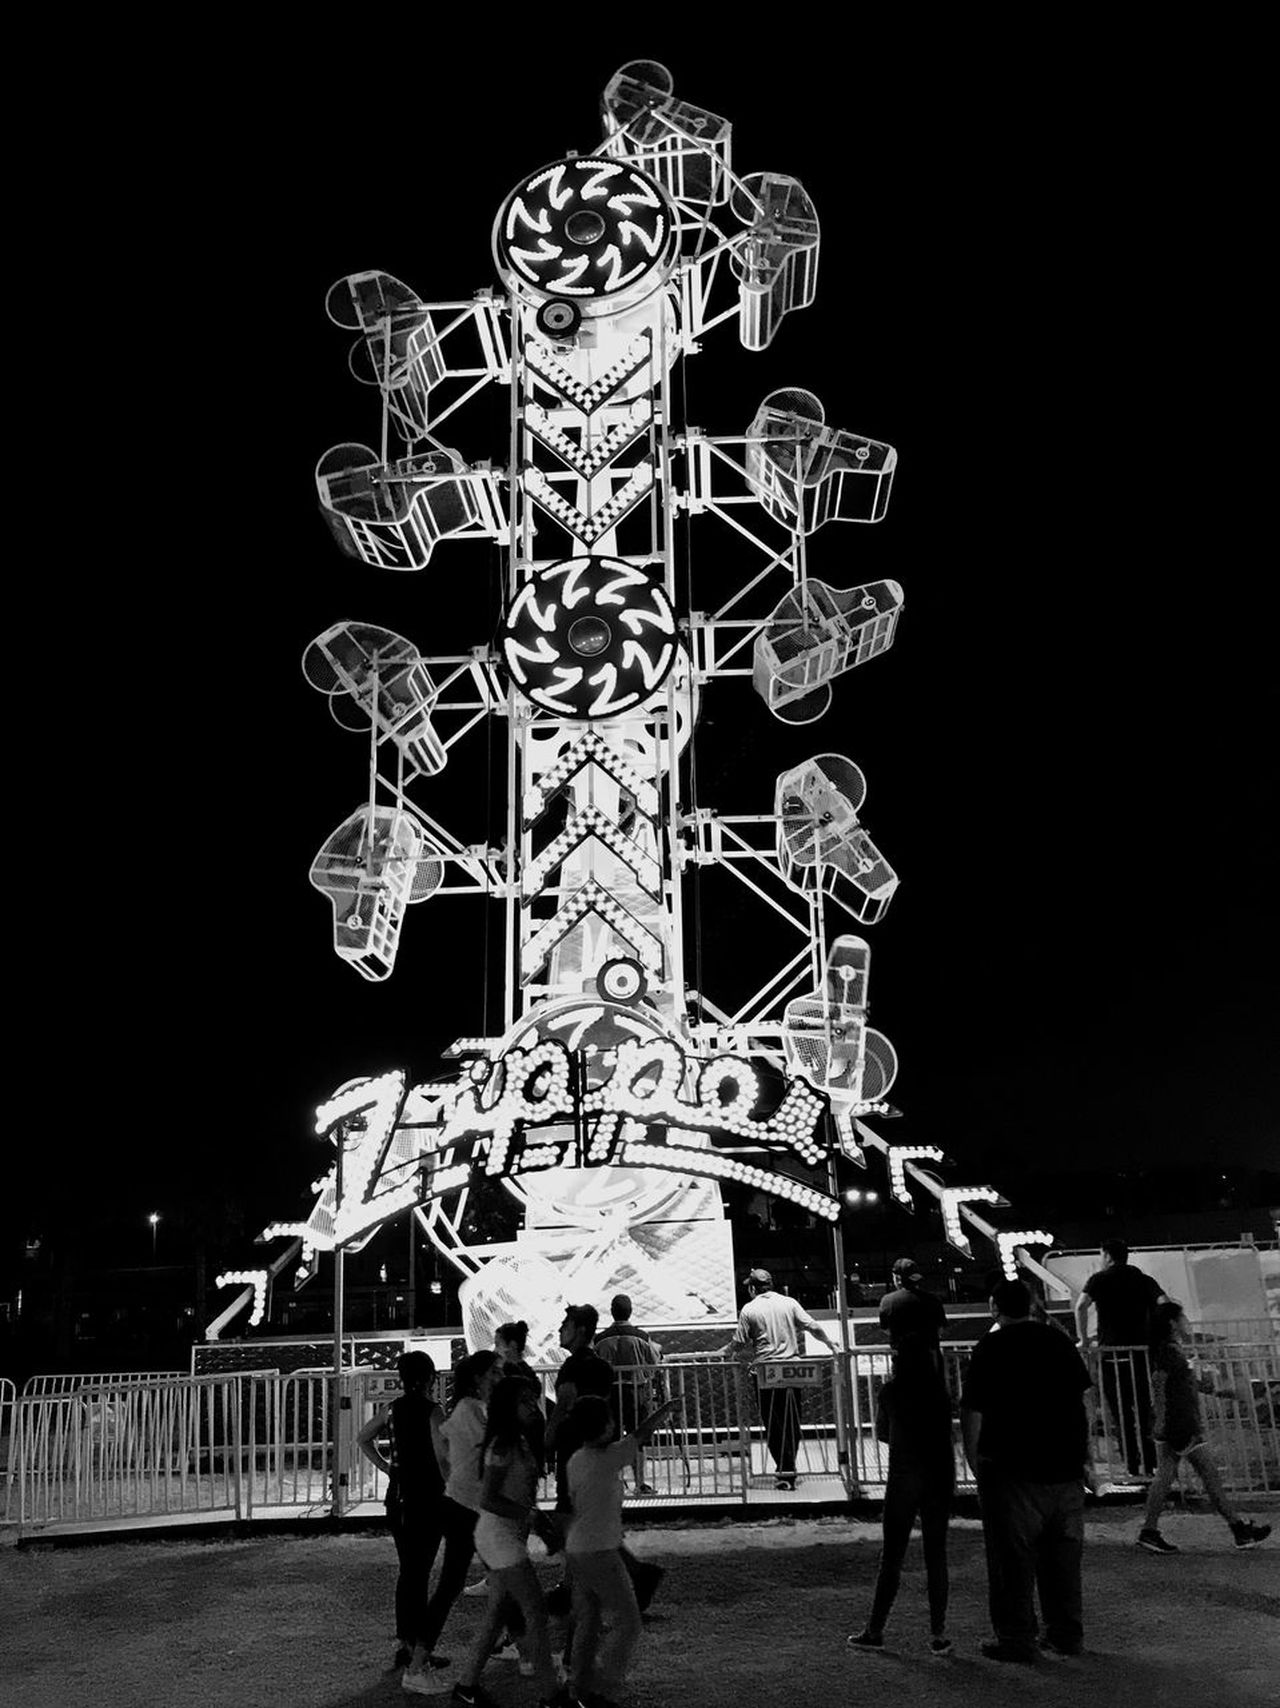 Black and white Night Real People Men Amusement Park Lifestyles Illuminated Women Large Group Of People Arts Culture And Entertainment Amusement Park Ride Carousel Outdoors People Sky